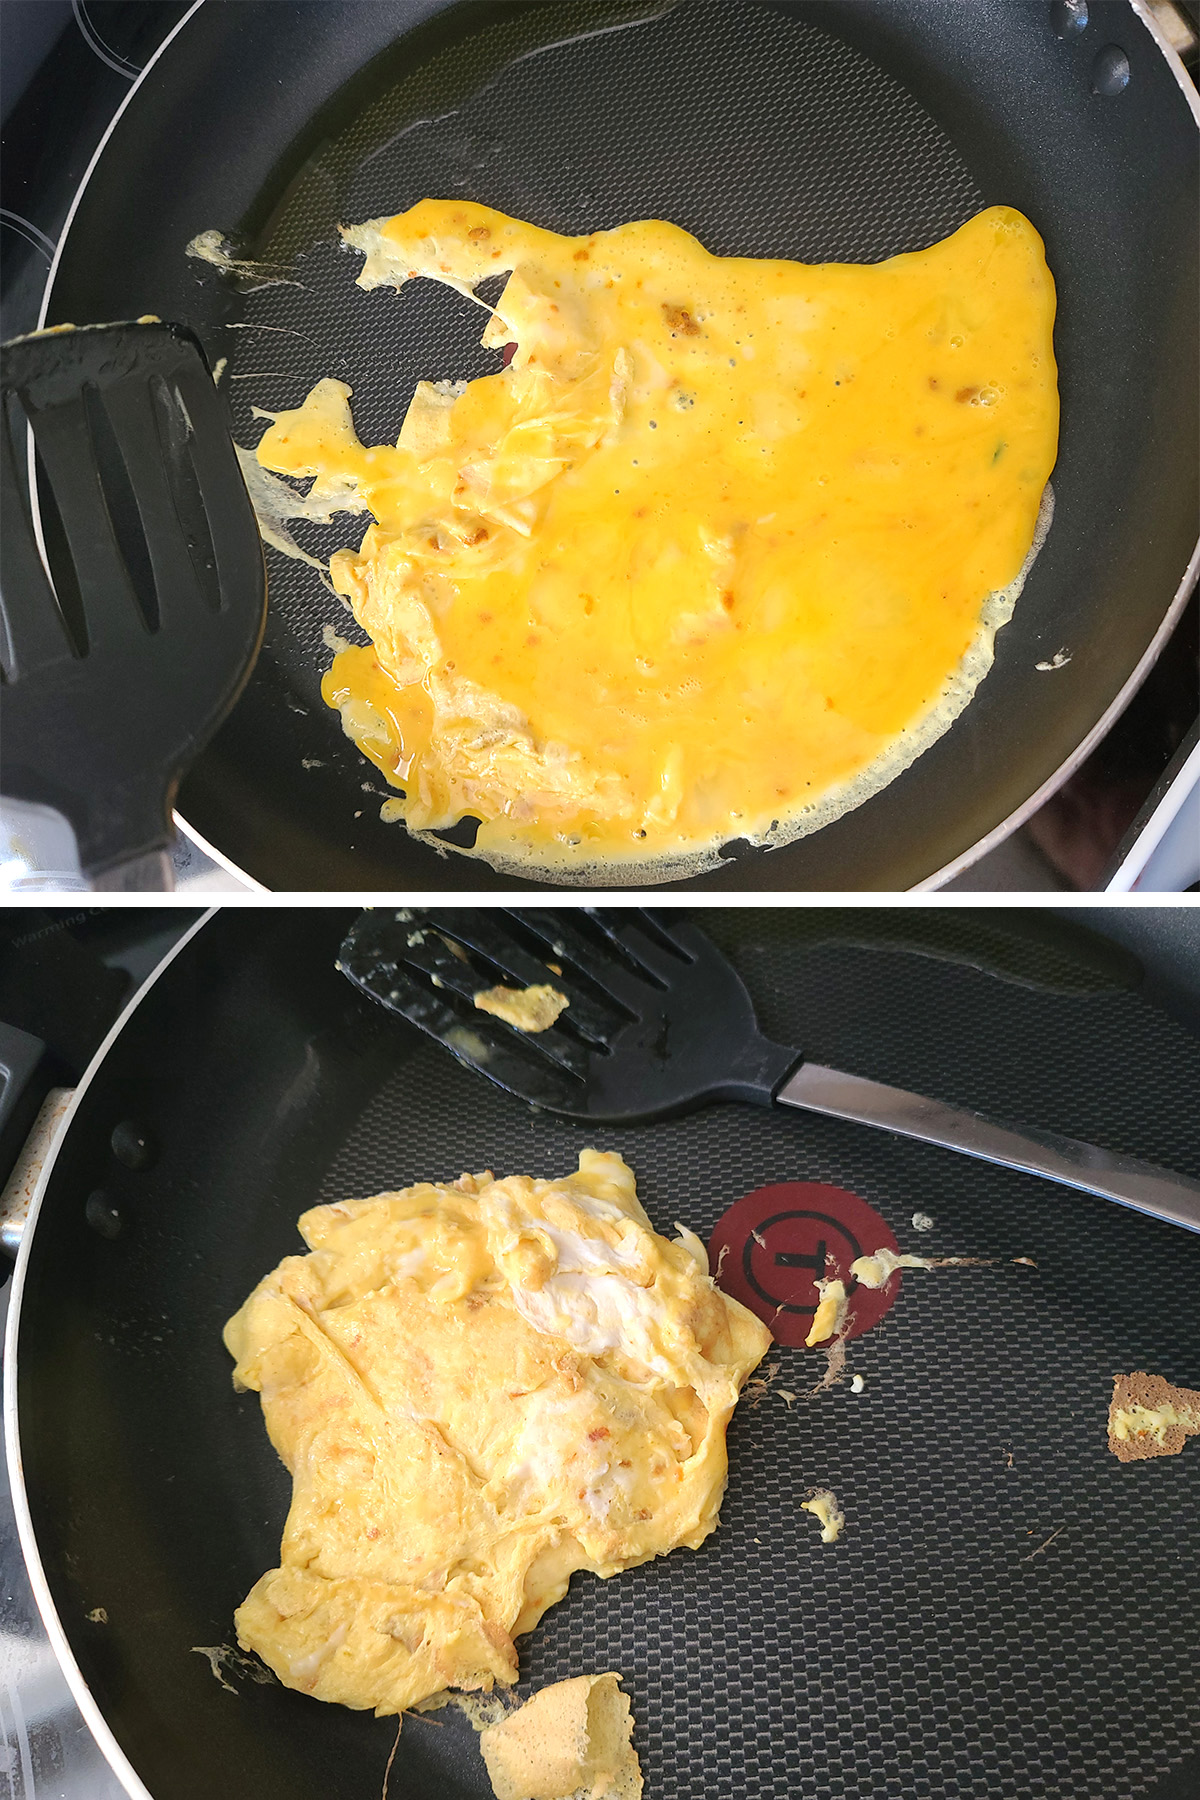 A two part compilation image showing eggs being scrambled.